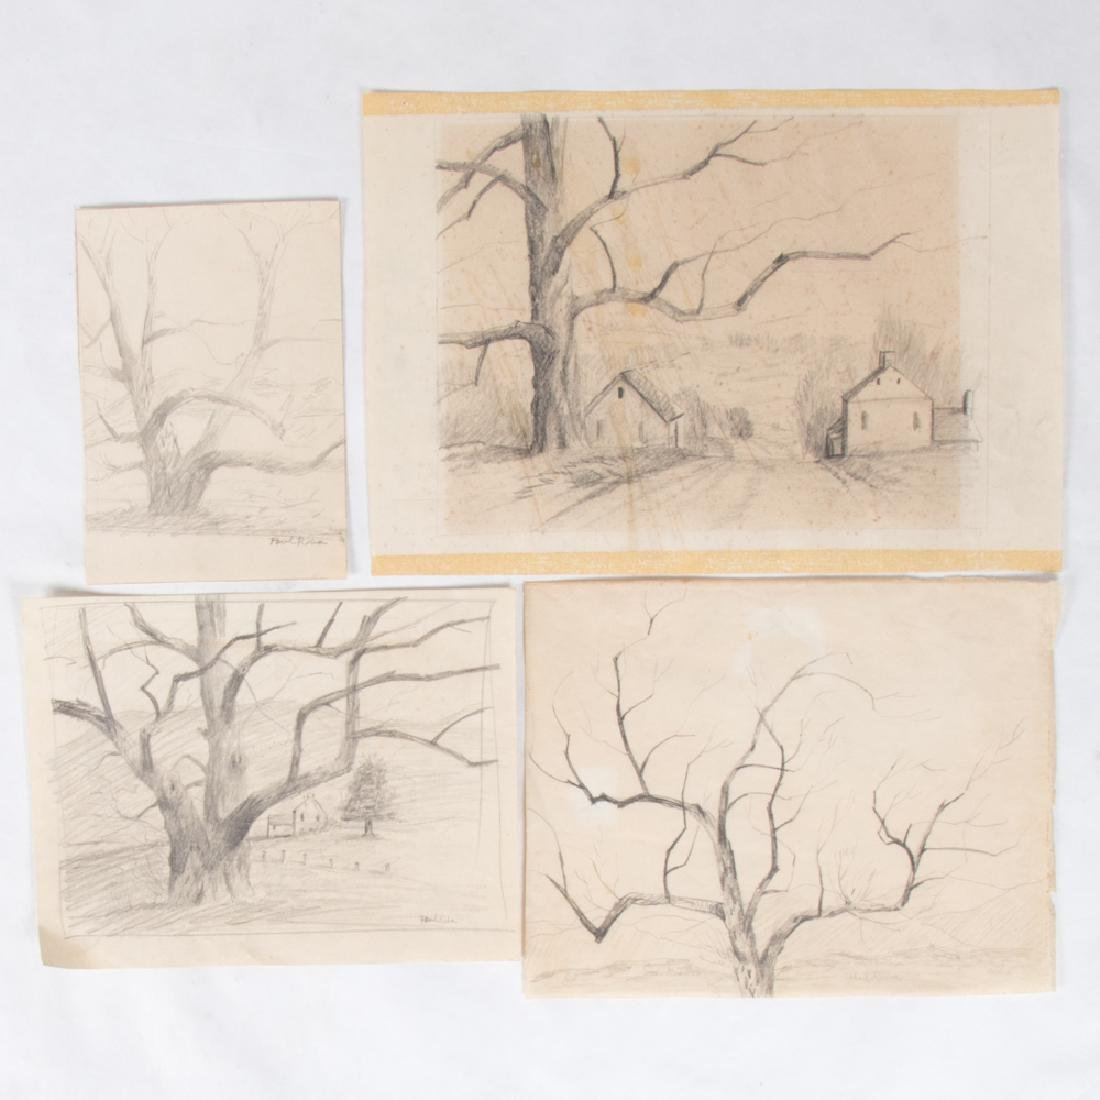 Paul Riba (1912-1977) A Group of Four Studies, Pencil